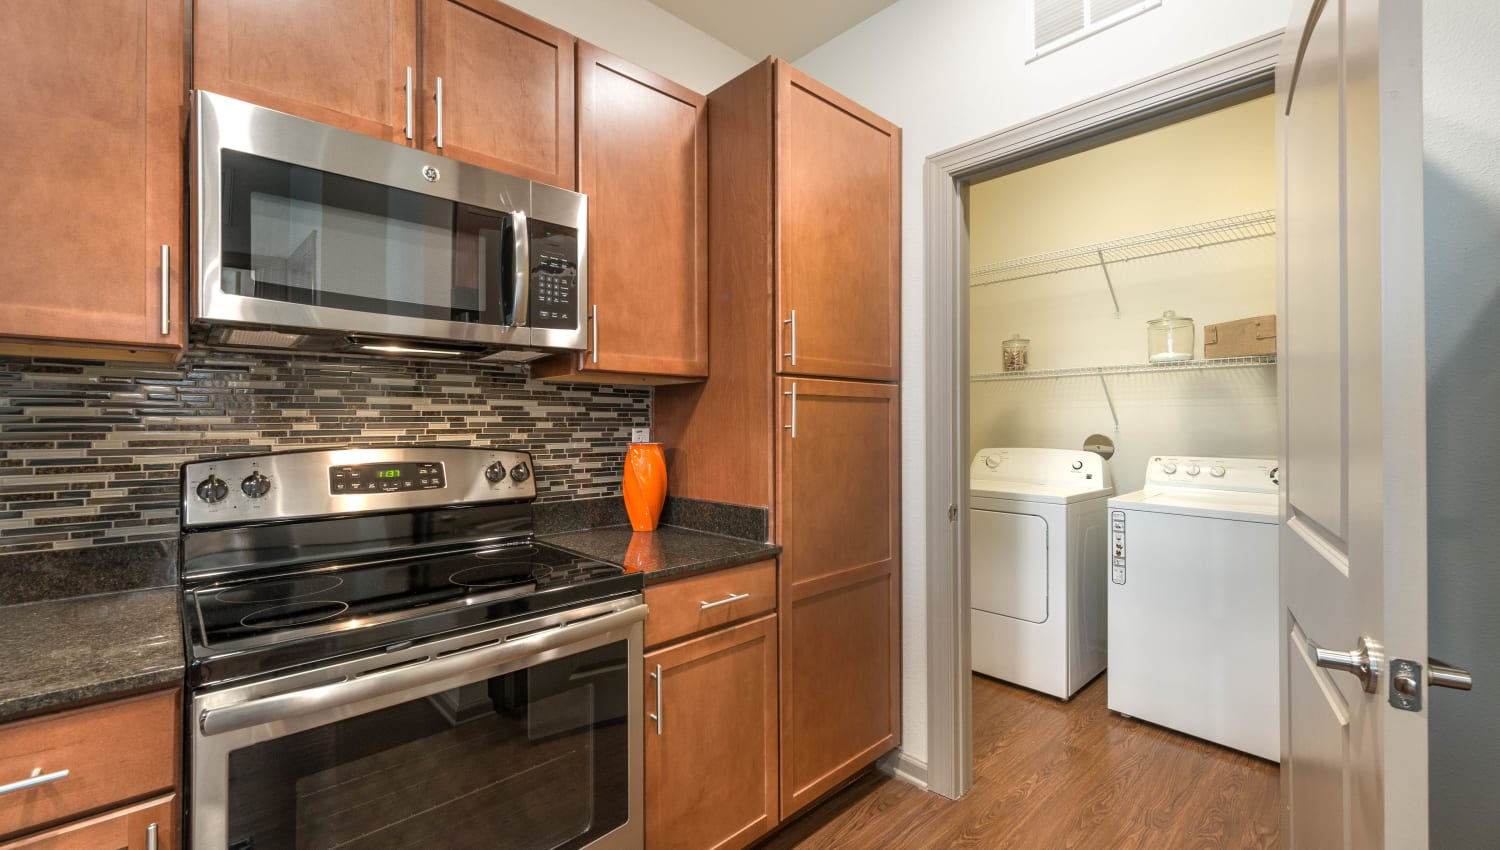 Laundry room next to the kitchen in a model apartment at Olympus Waterford in Keller, Texas